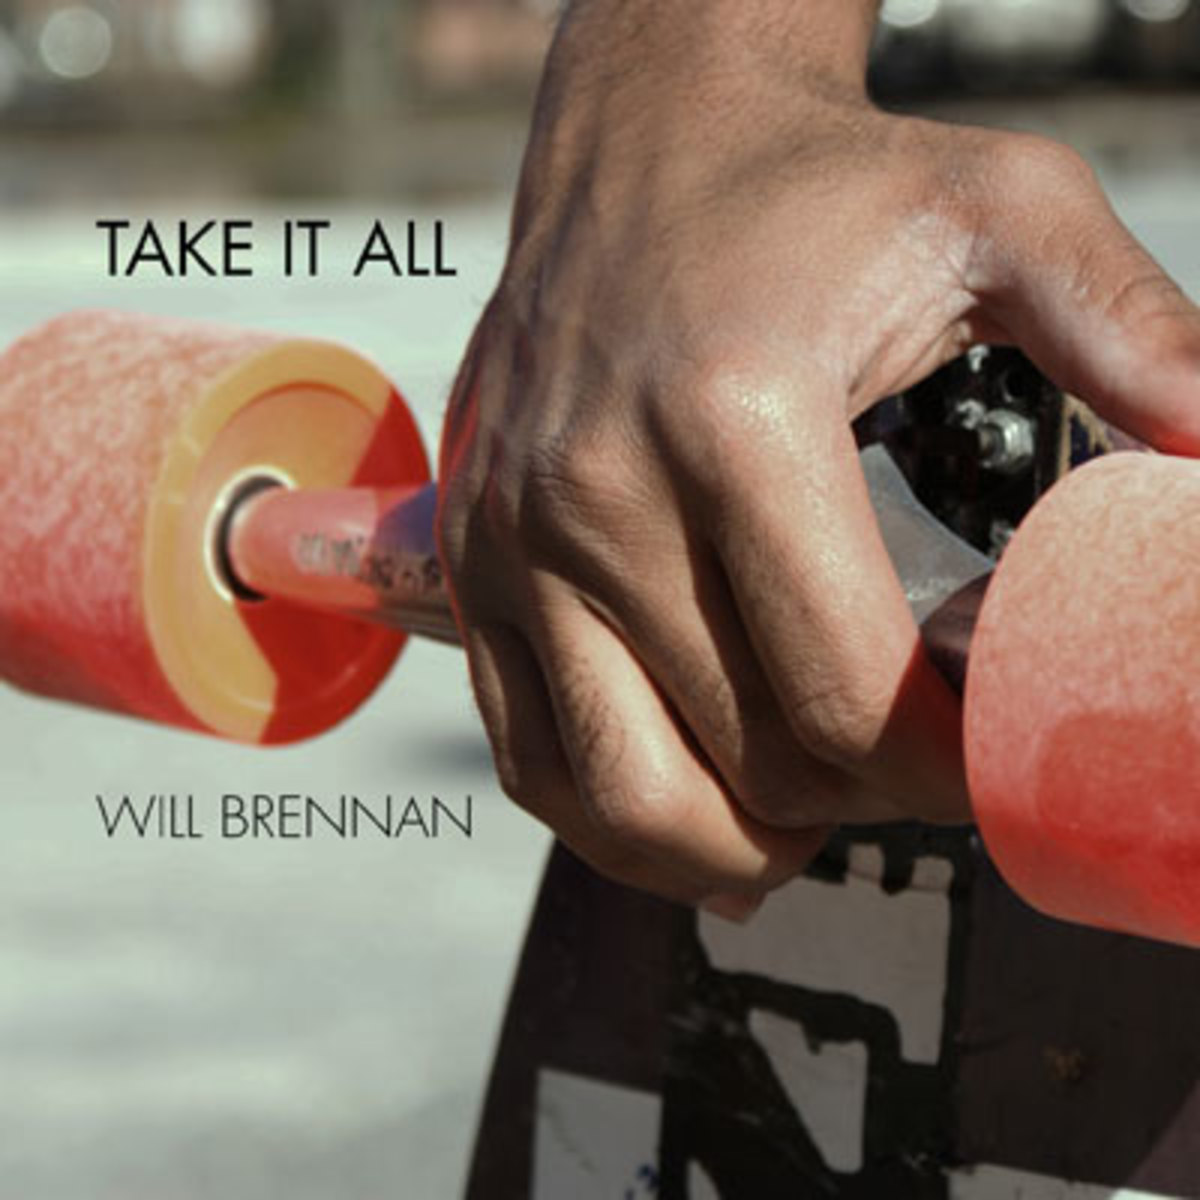 willbrennan-takeitall.jpg